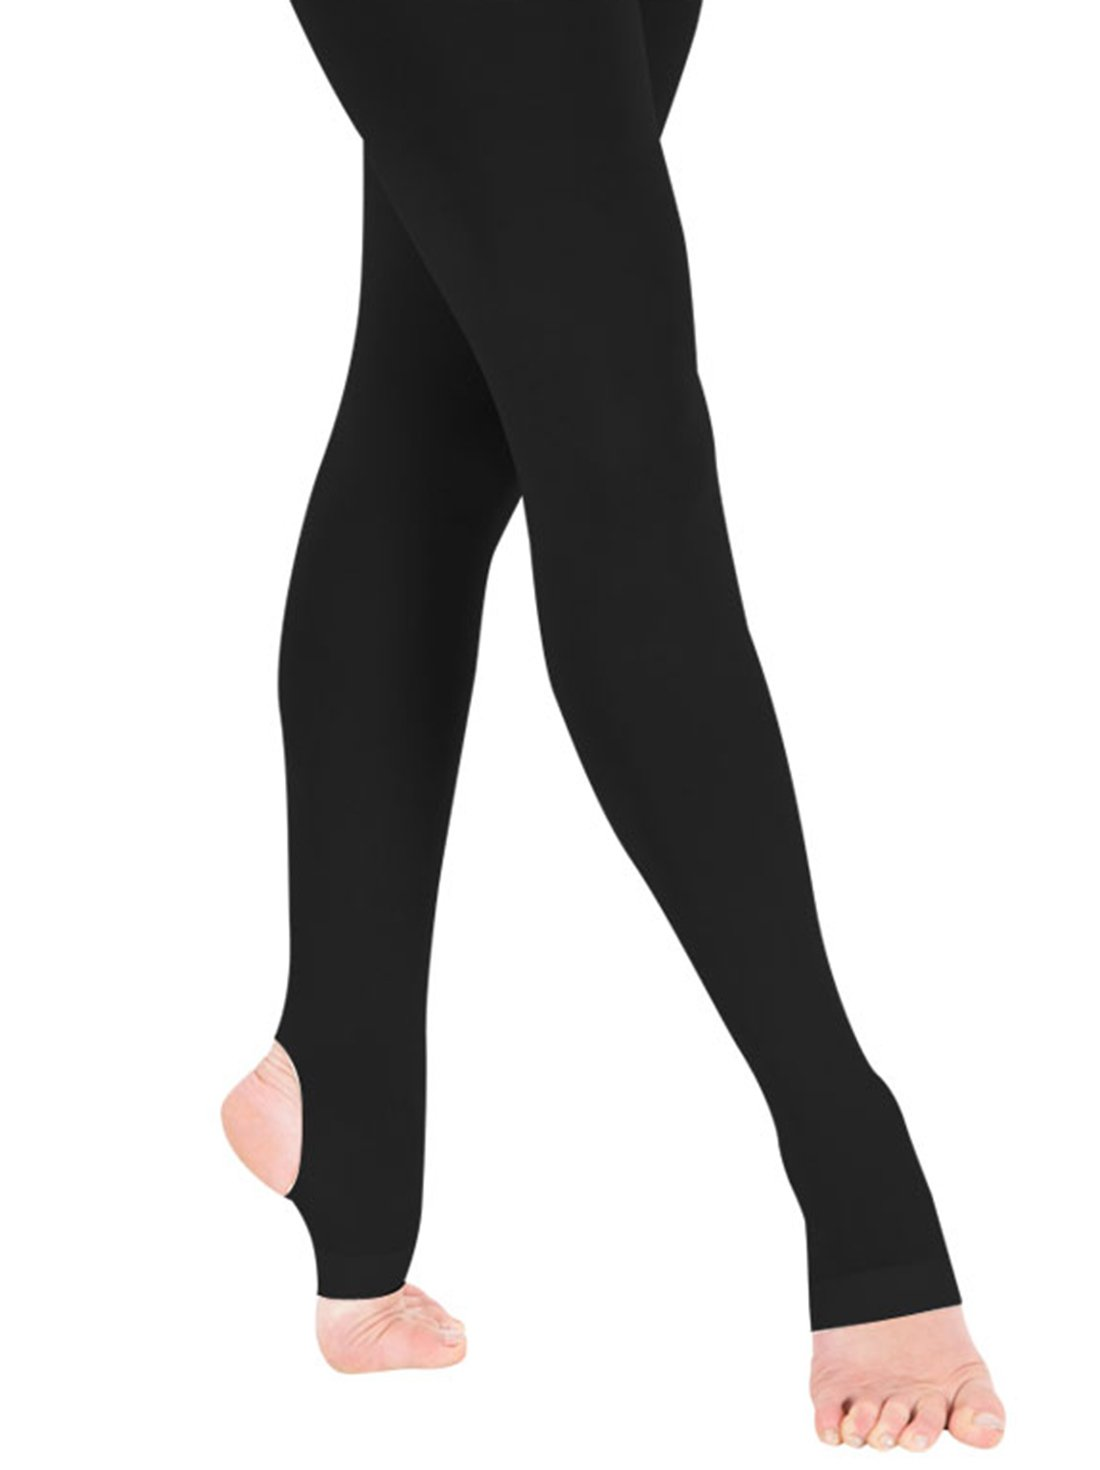 Toddlers Footed Dance Tight Ballet Stocking Microfiber Dancing Legging by FEOYA